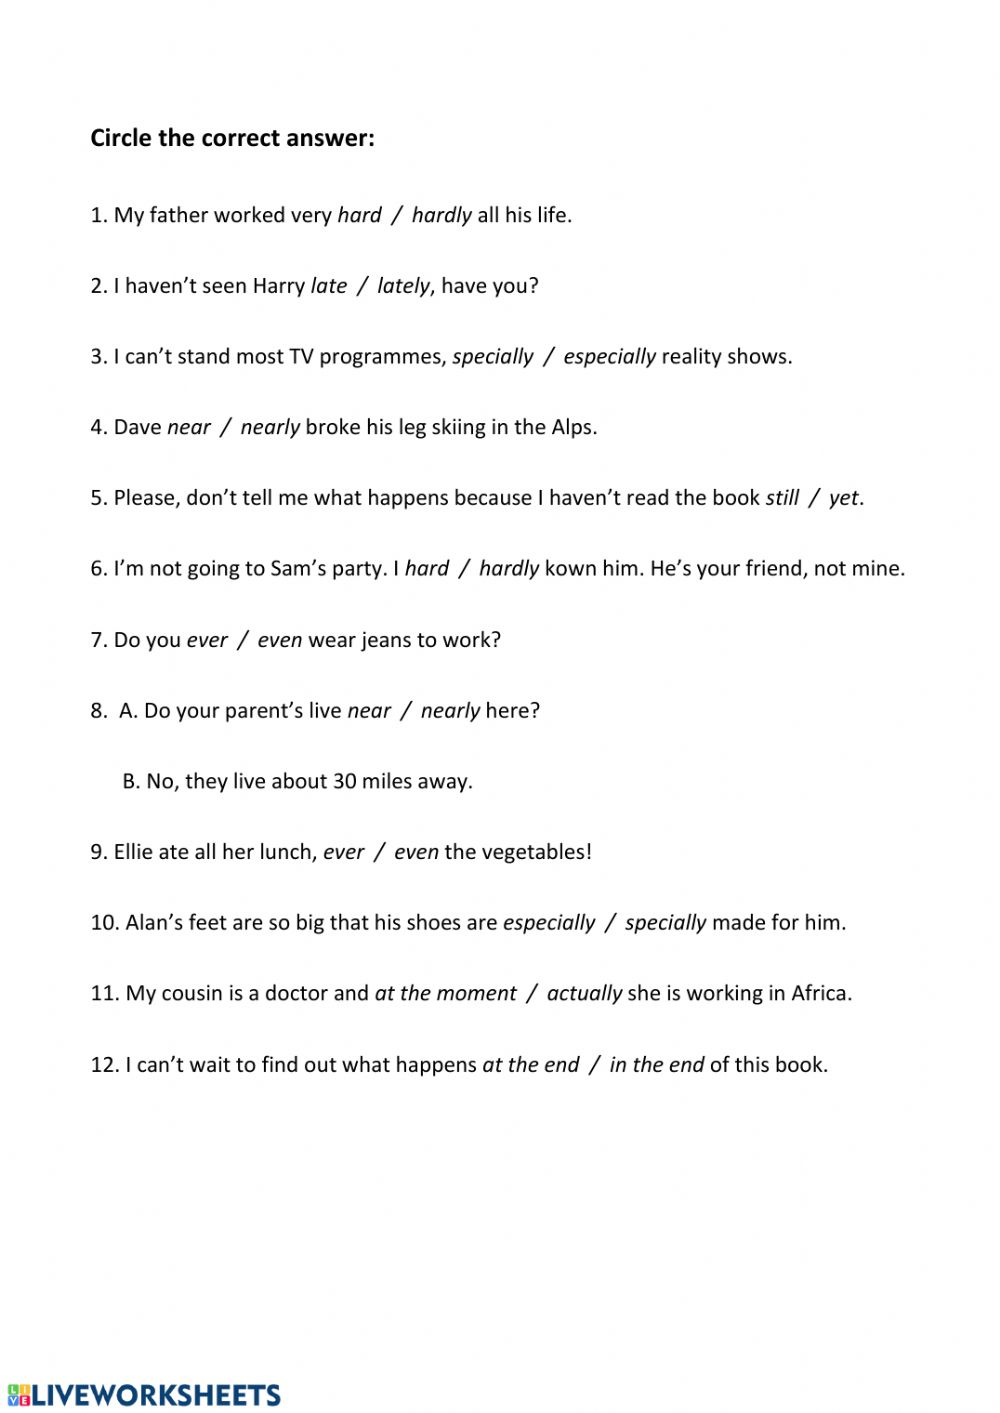 hight resolution of B2.2 Adverbs and adverbial phrases worksheet